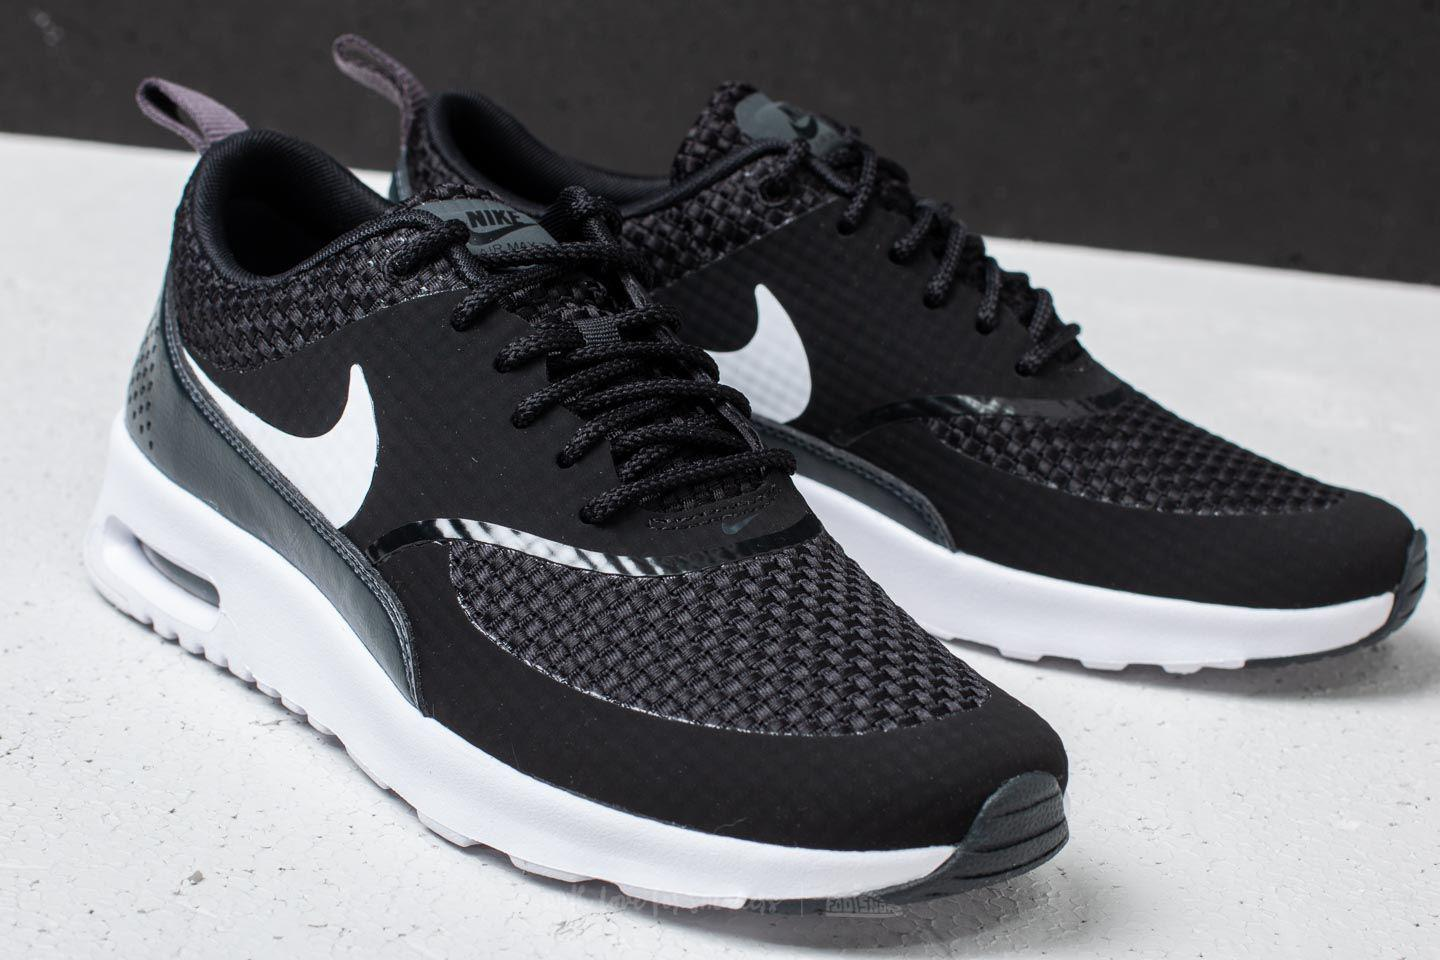 new concept 78002 17164 Lyst - Nike Wmns Air Max Thea Premium Black  White-anthracite in Black